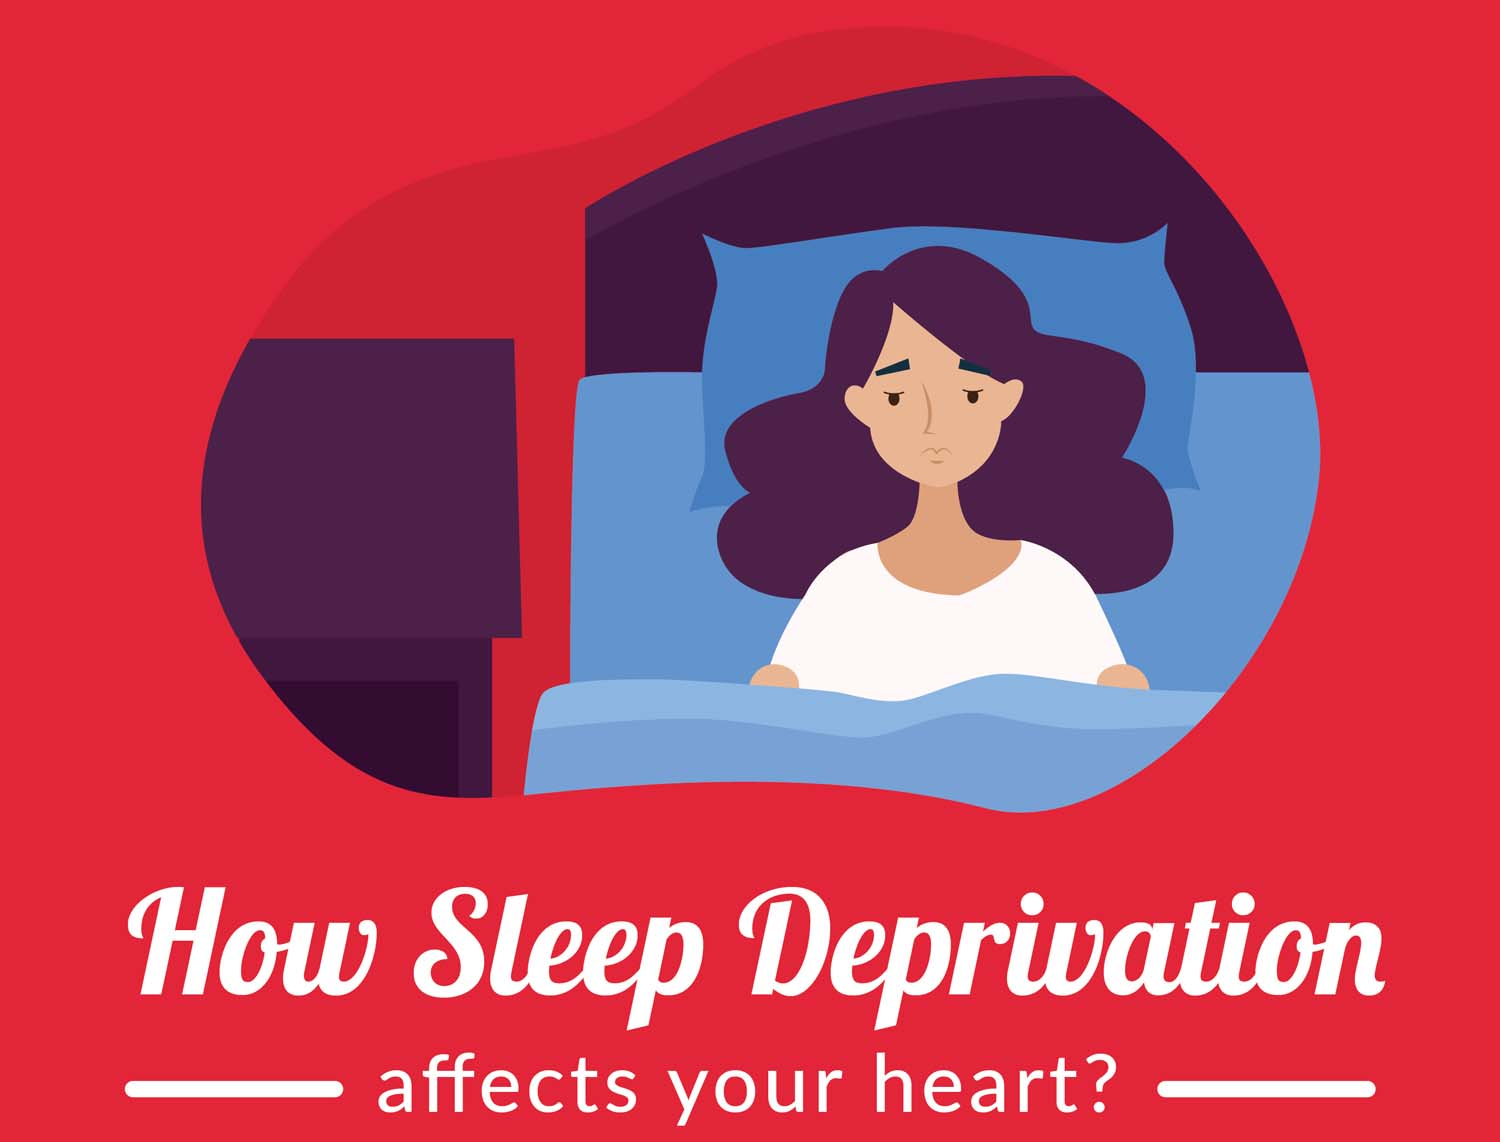 How Sleep Deprivation Affects Your Heart?